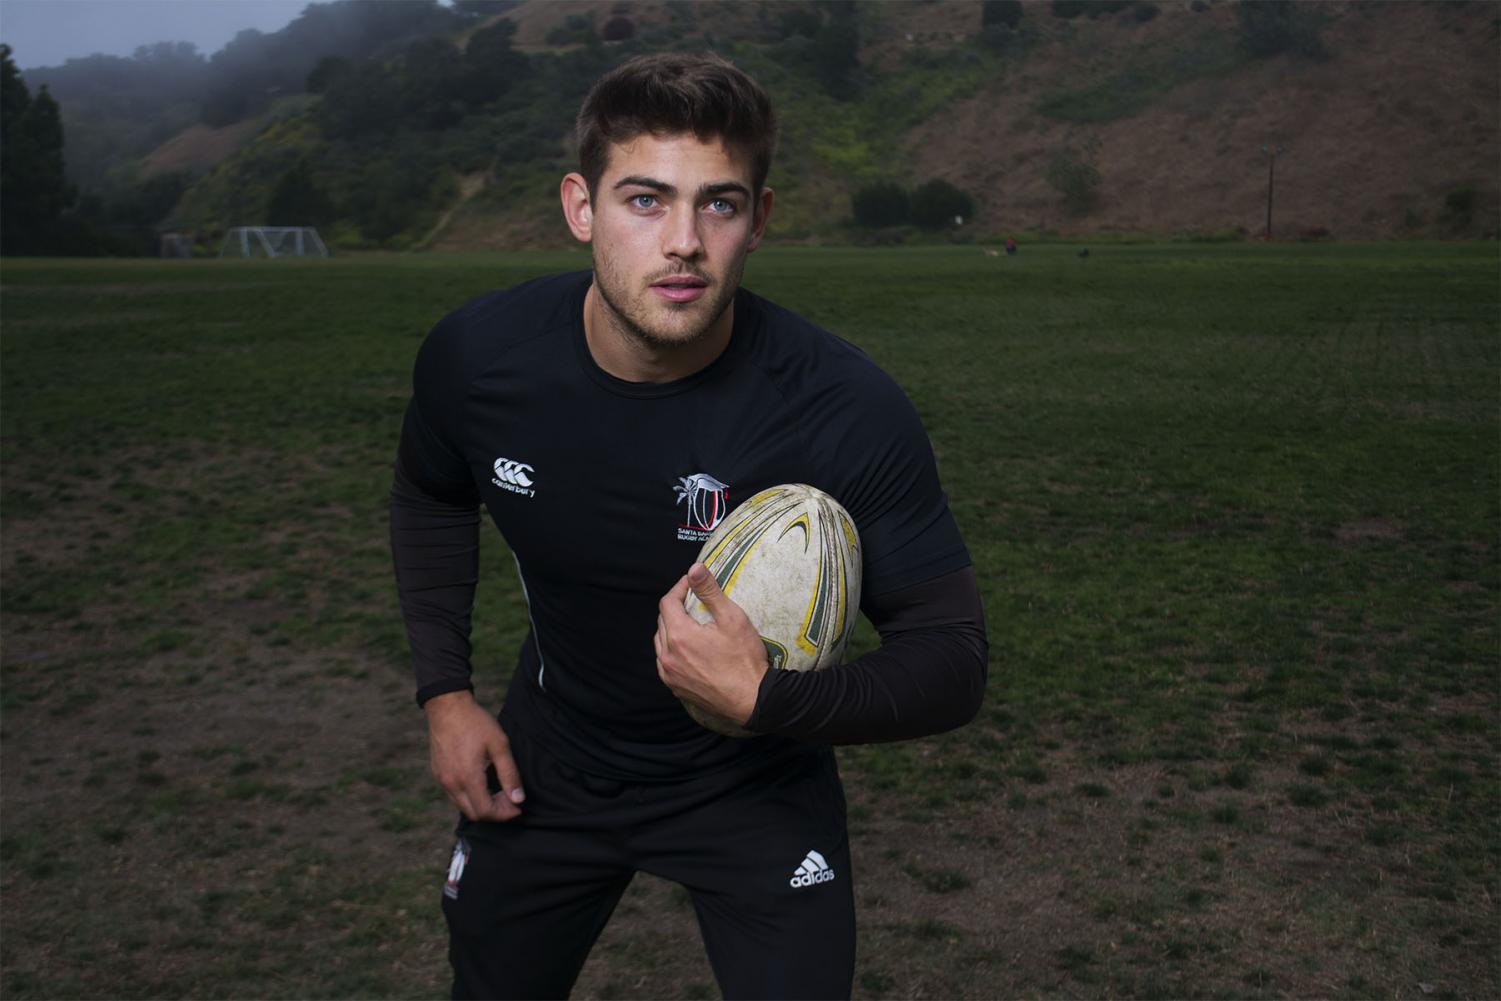 Vaquero's rugby player Chris Noggle poses before practice at 7 p.m. on Thursday, April 24, 2019, at Elings Park in Santa Barbara, Calif.